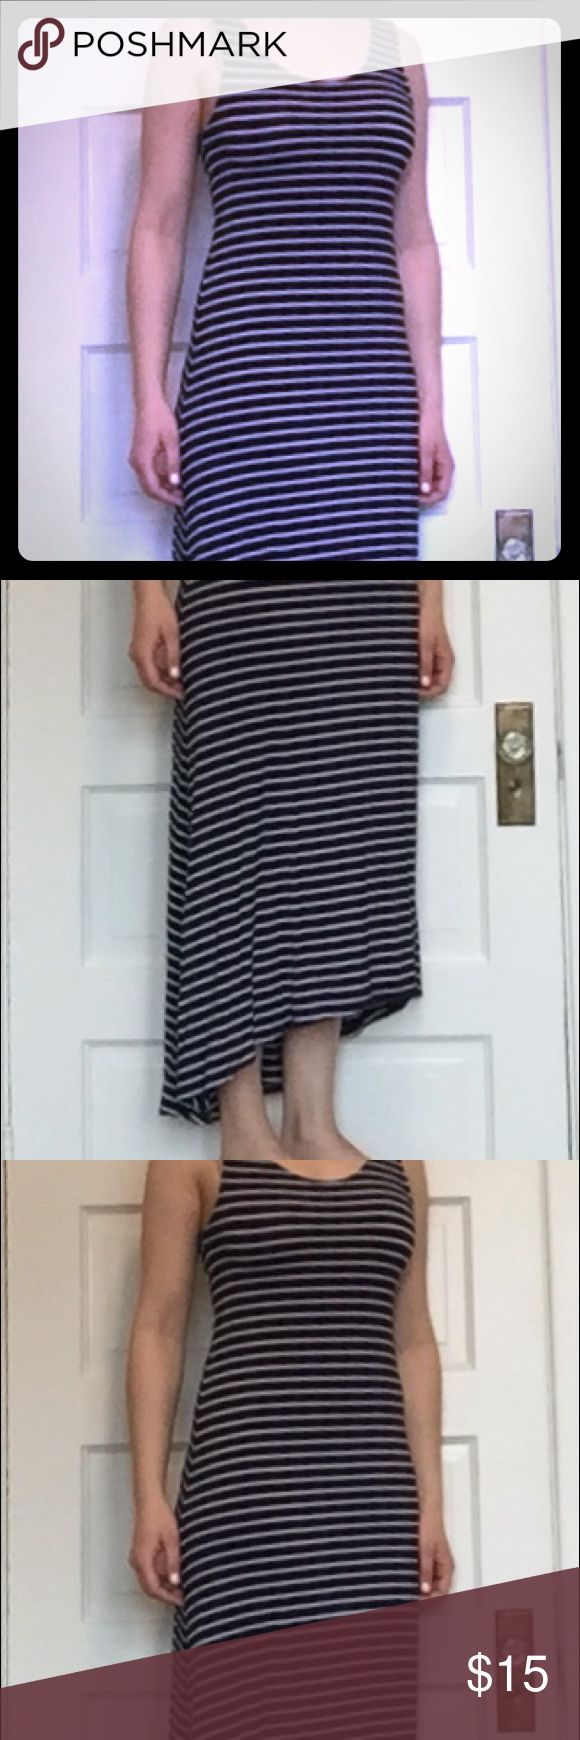 Navy blue and white stripped maxi dress Lightweight navy blue and white stripped maxi dress. High-low style. Fit is closer to S than M. 95% Vilcose, 5% Spandex. Like new! Dresses Maxi